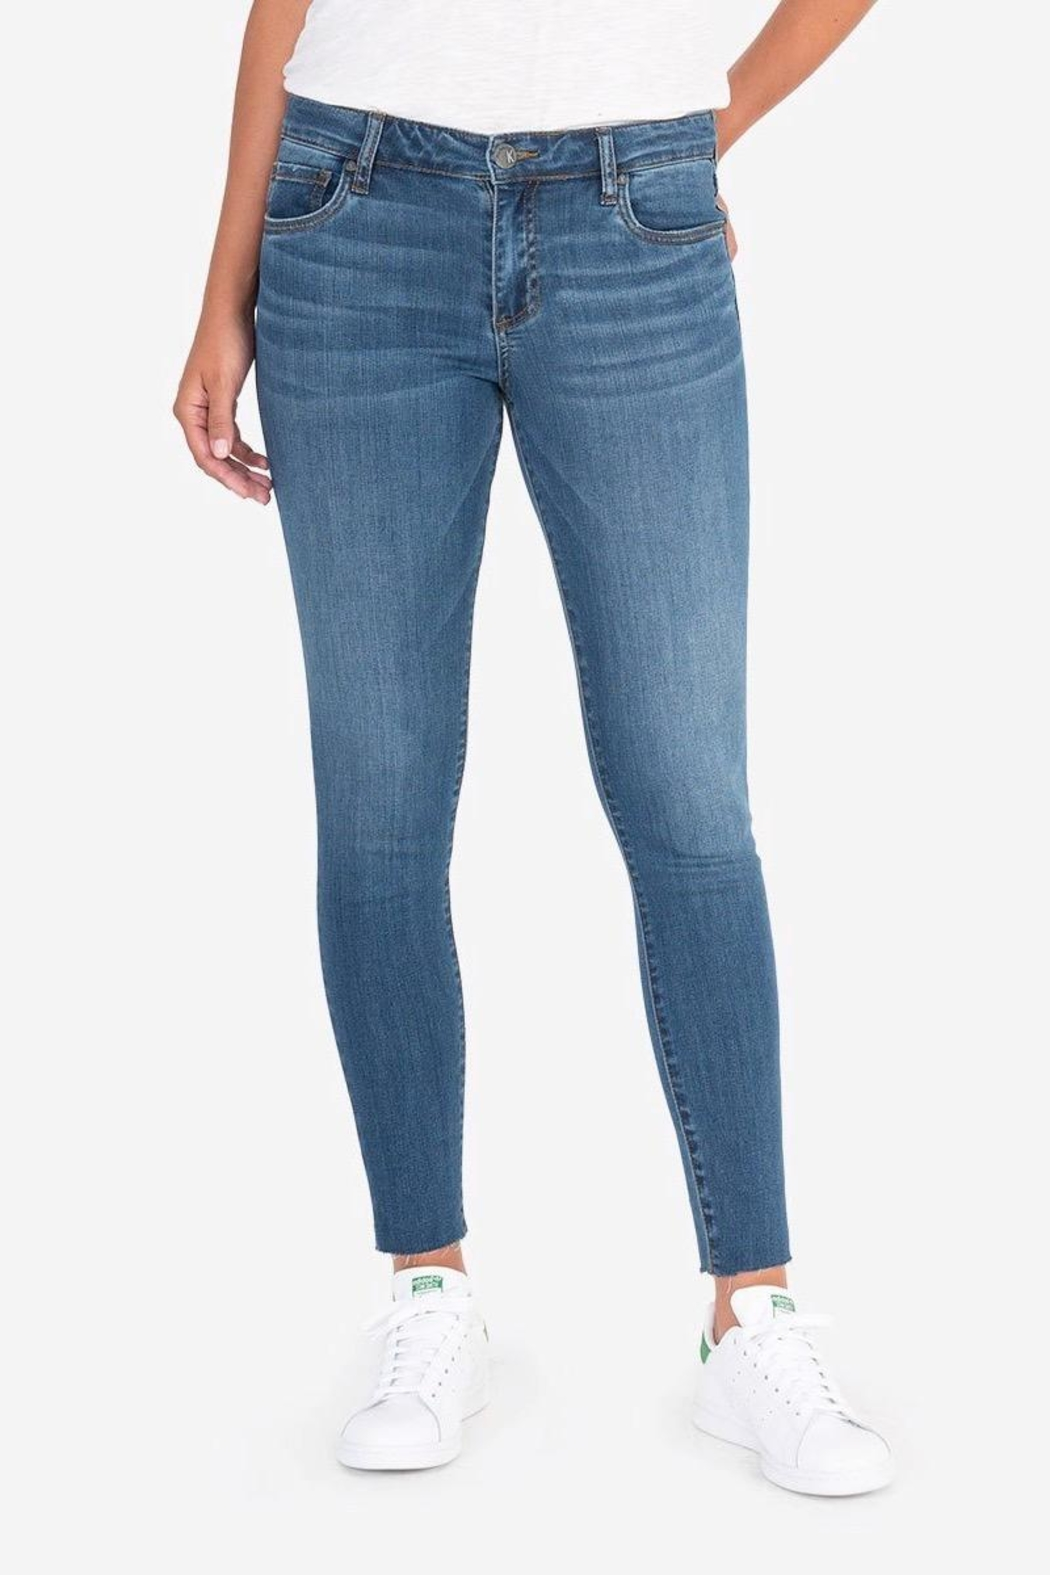 Kut from the Kloth Donna Ankle Skinny - Main Image